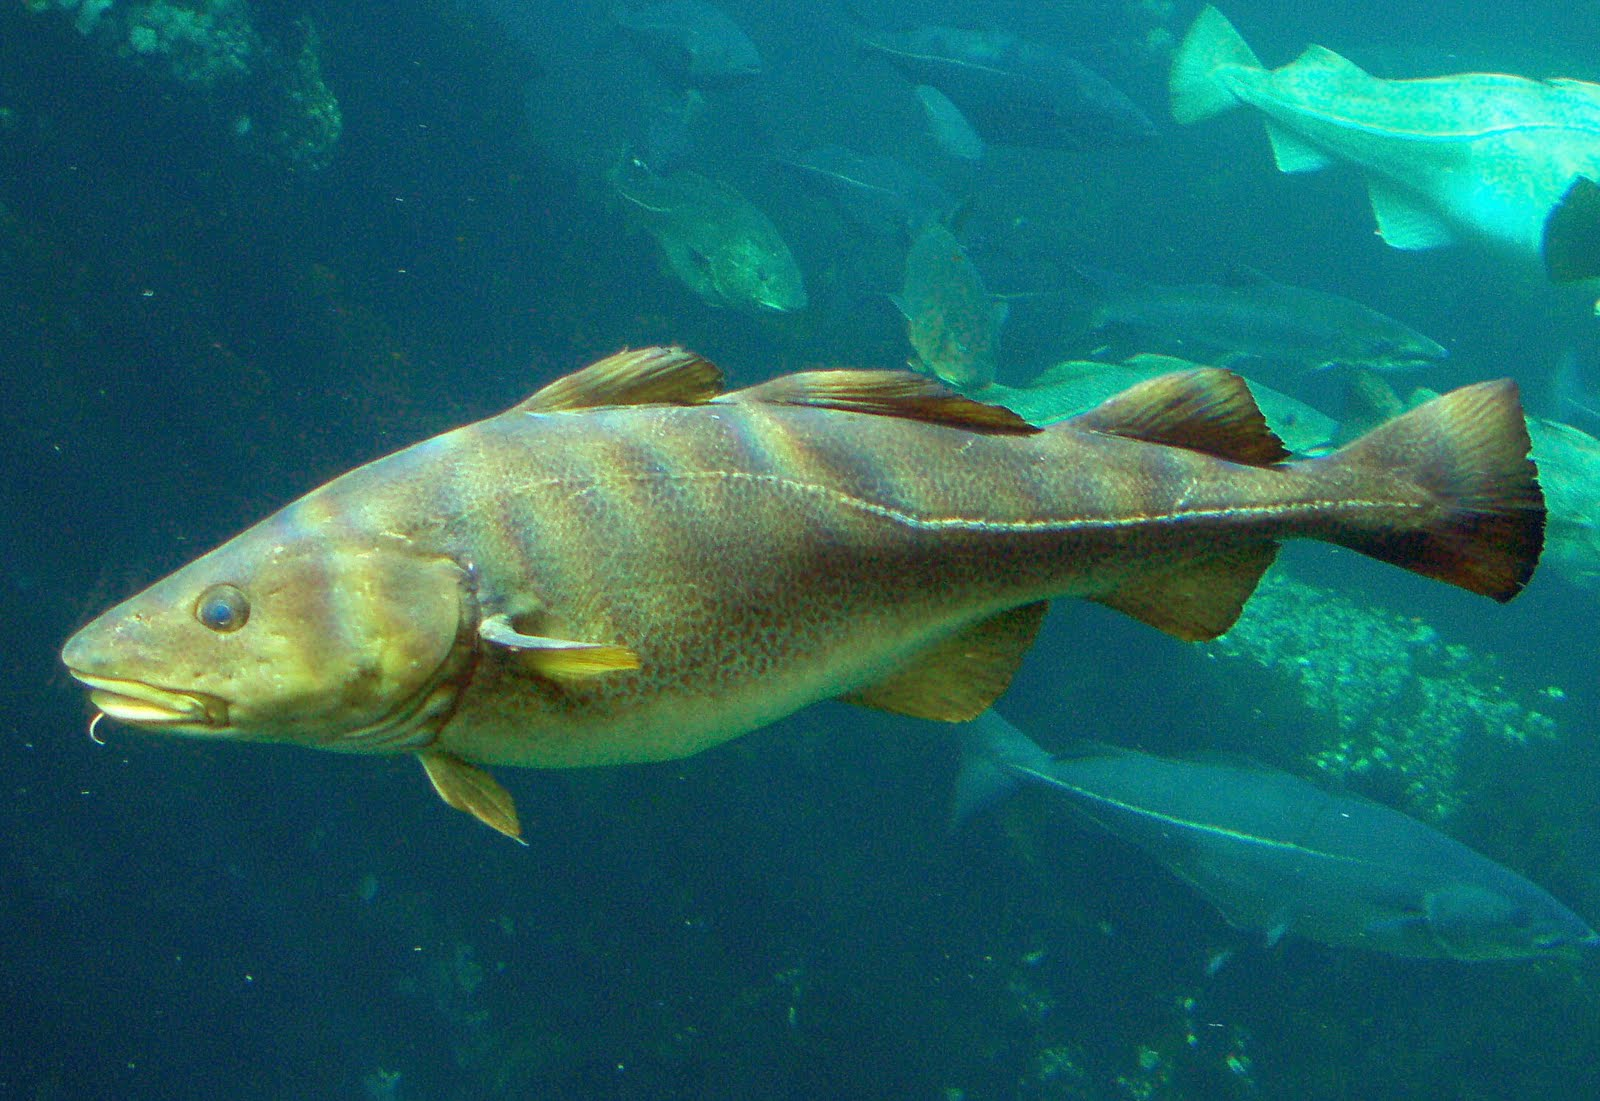 DEEP BLUE HOME: AT LAST, SOME GOOD NEWS FOR ATLANTIC COD